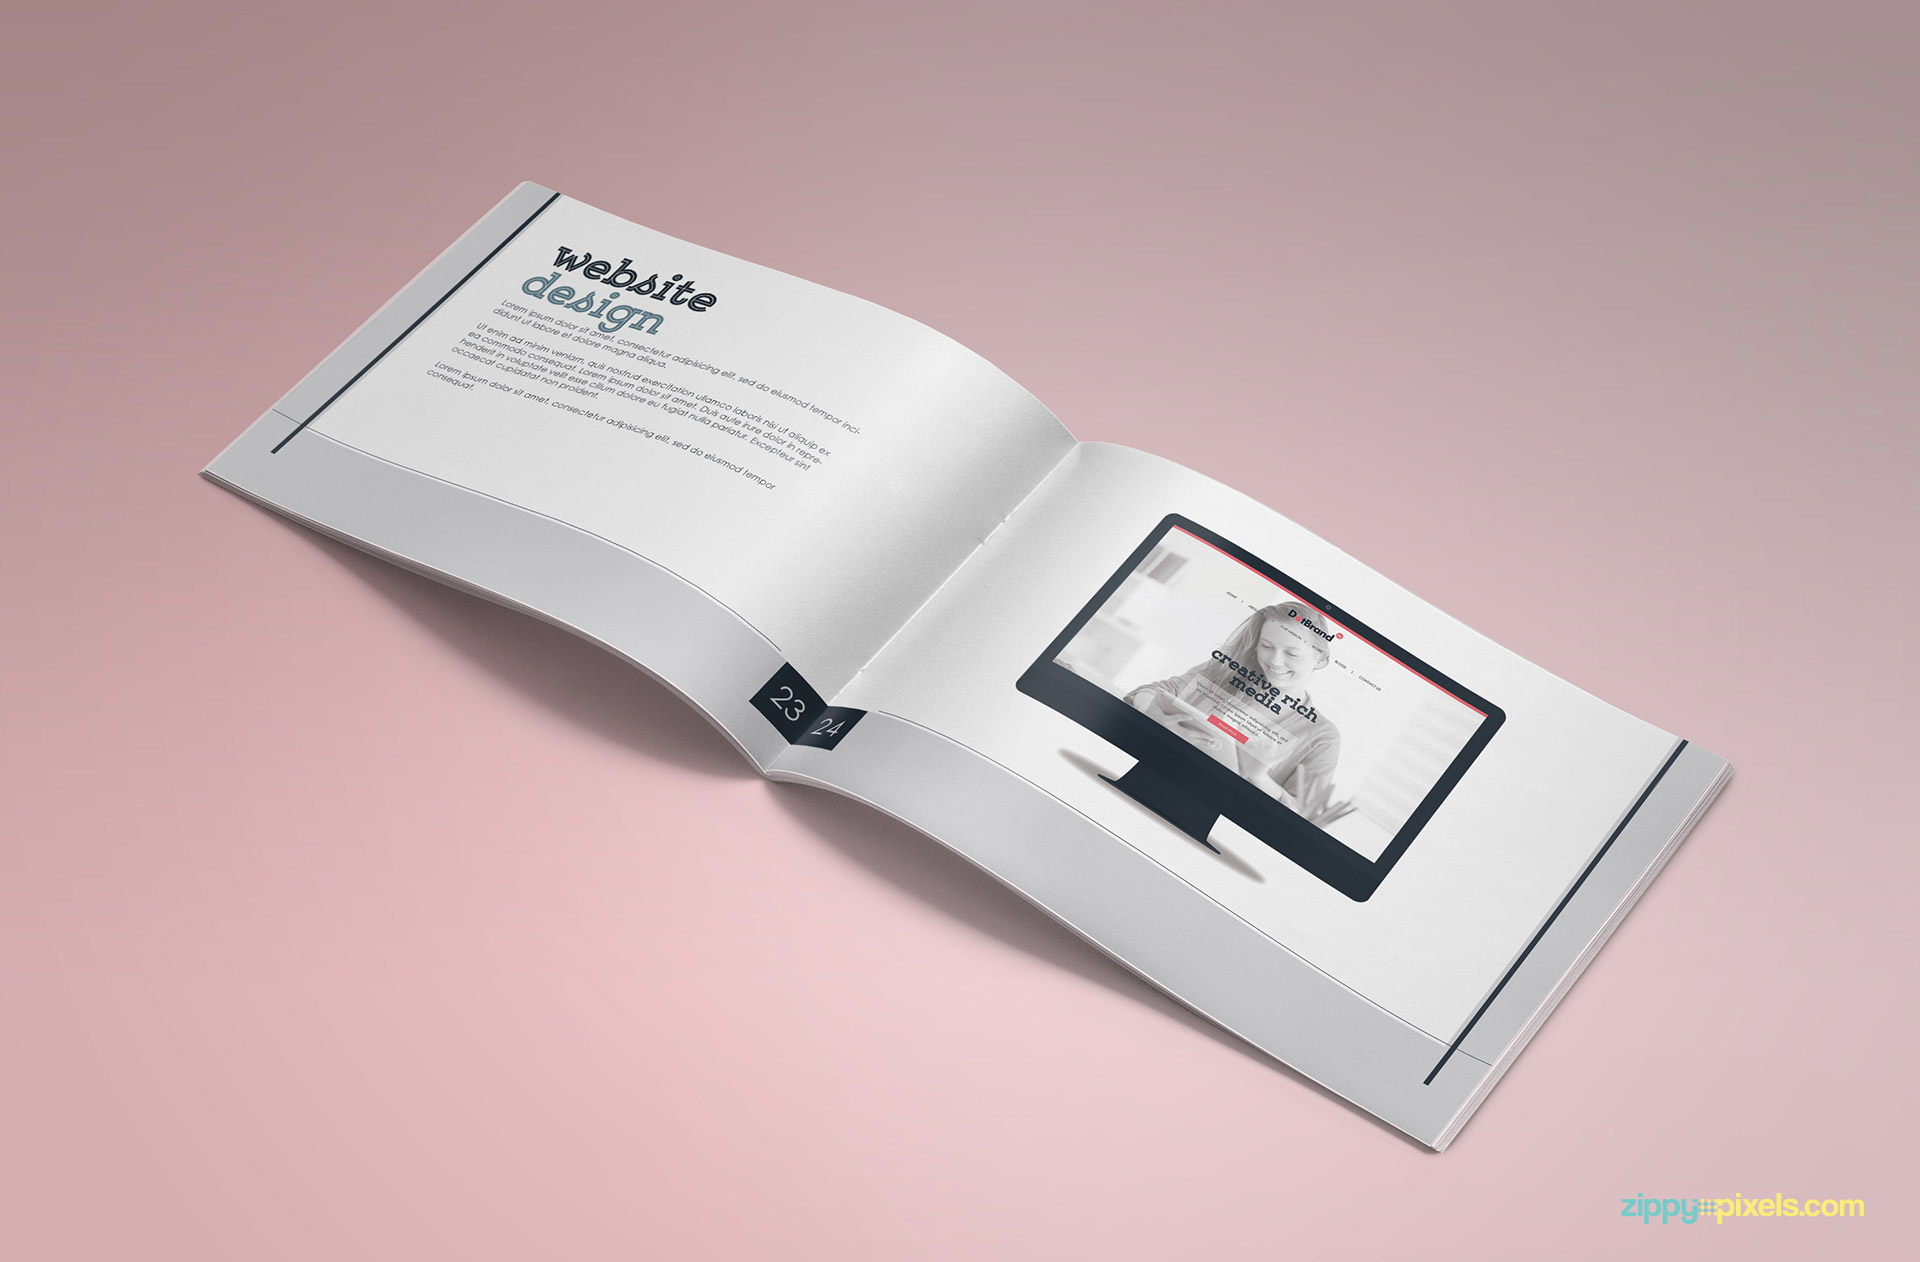 17-brand-book-8-website-design